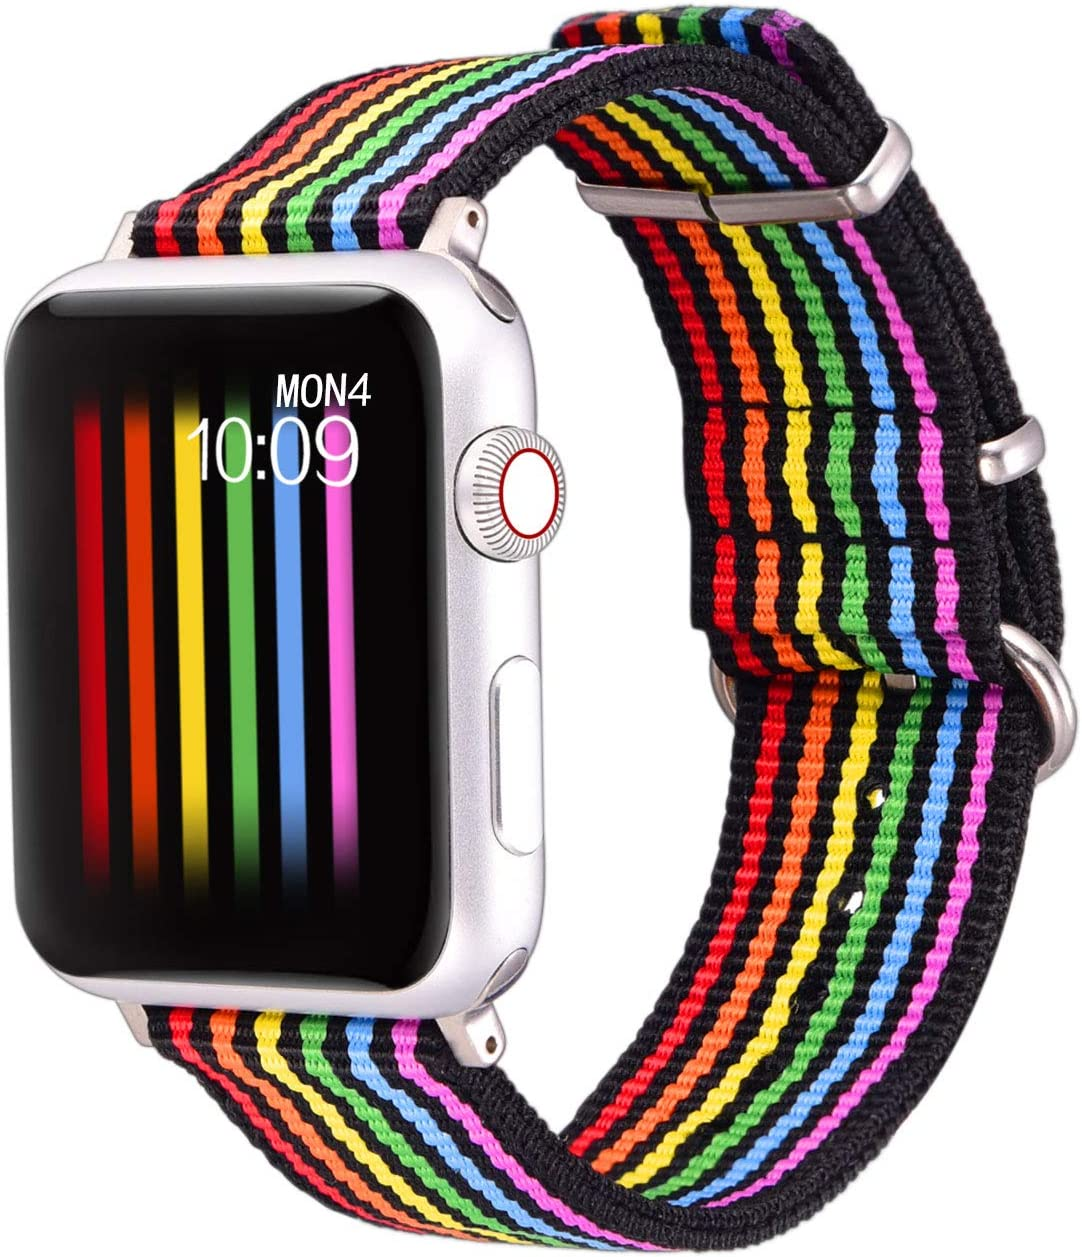 Bandmax Rainbow Watch Band Compatible for Apple Watch,LGBT Woven Nylon Wristband Replacement Sport Strap Compatible for iWatch Series 5/4/3/2/1 38MM/40MM All Models(Black Bottom with Steel Buckle)